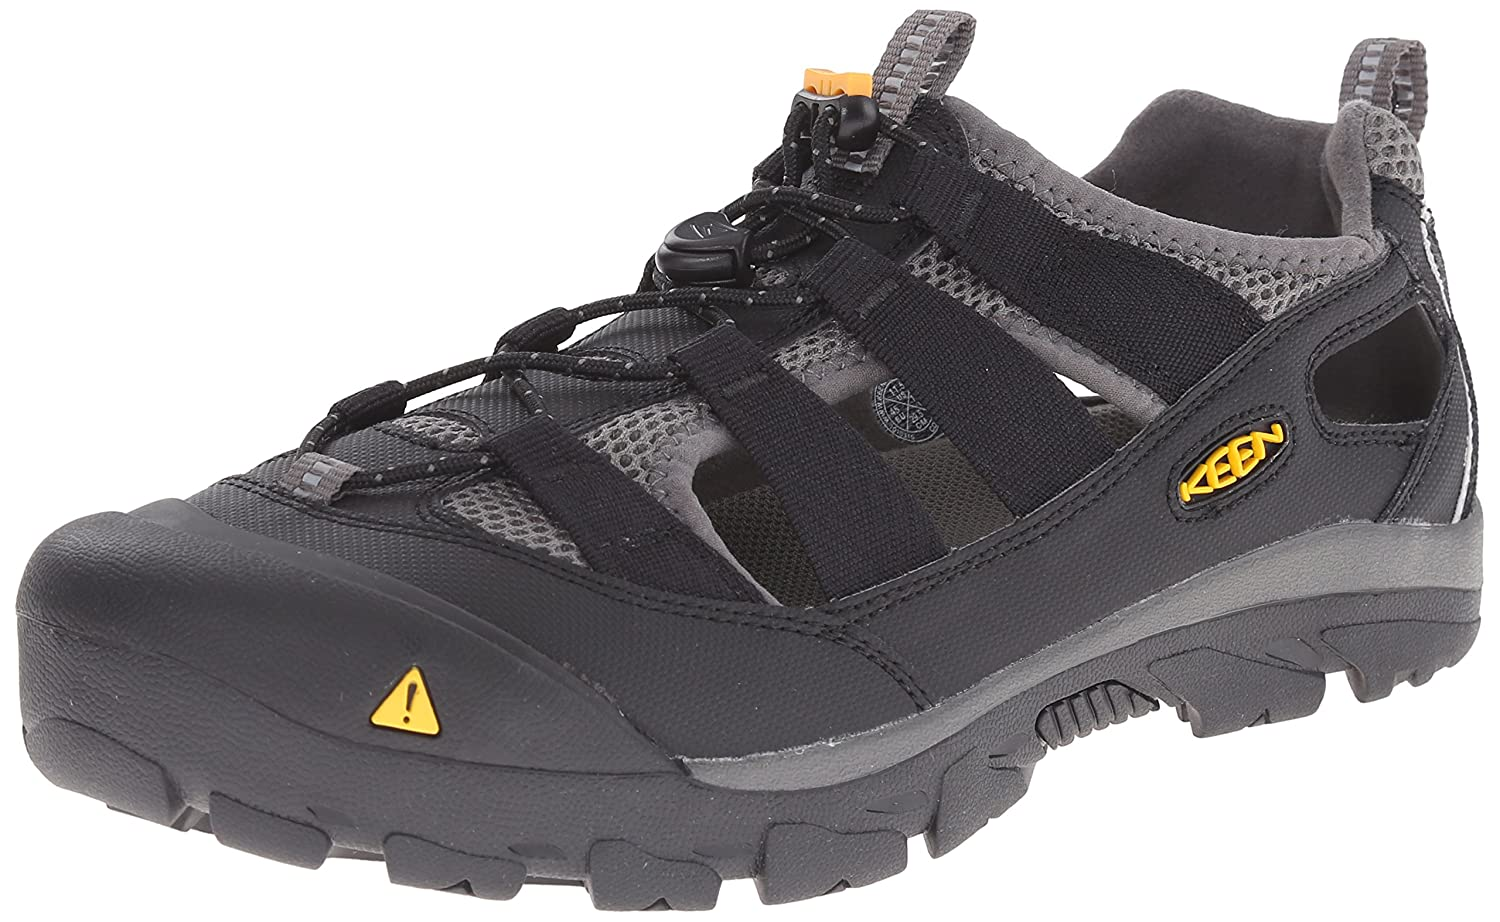 Keen Men's Commuter 4 Cycling Shoe Keen - US Shoes Commuter 4-M